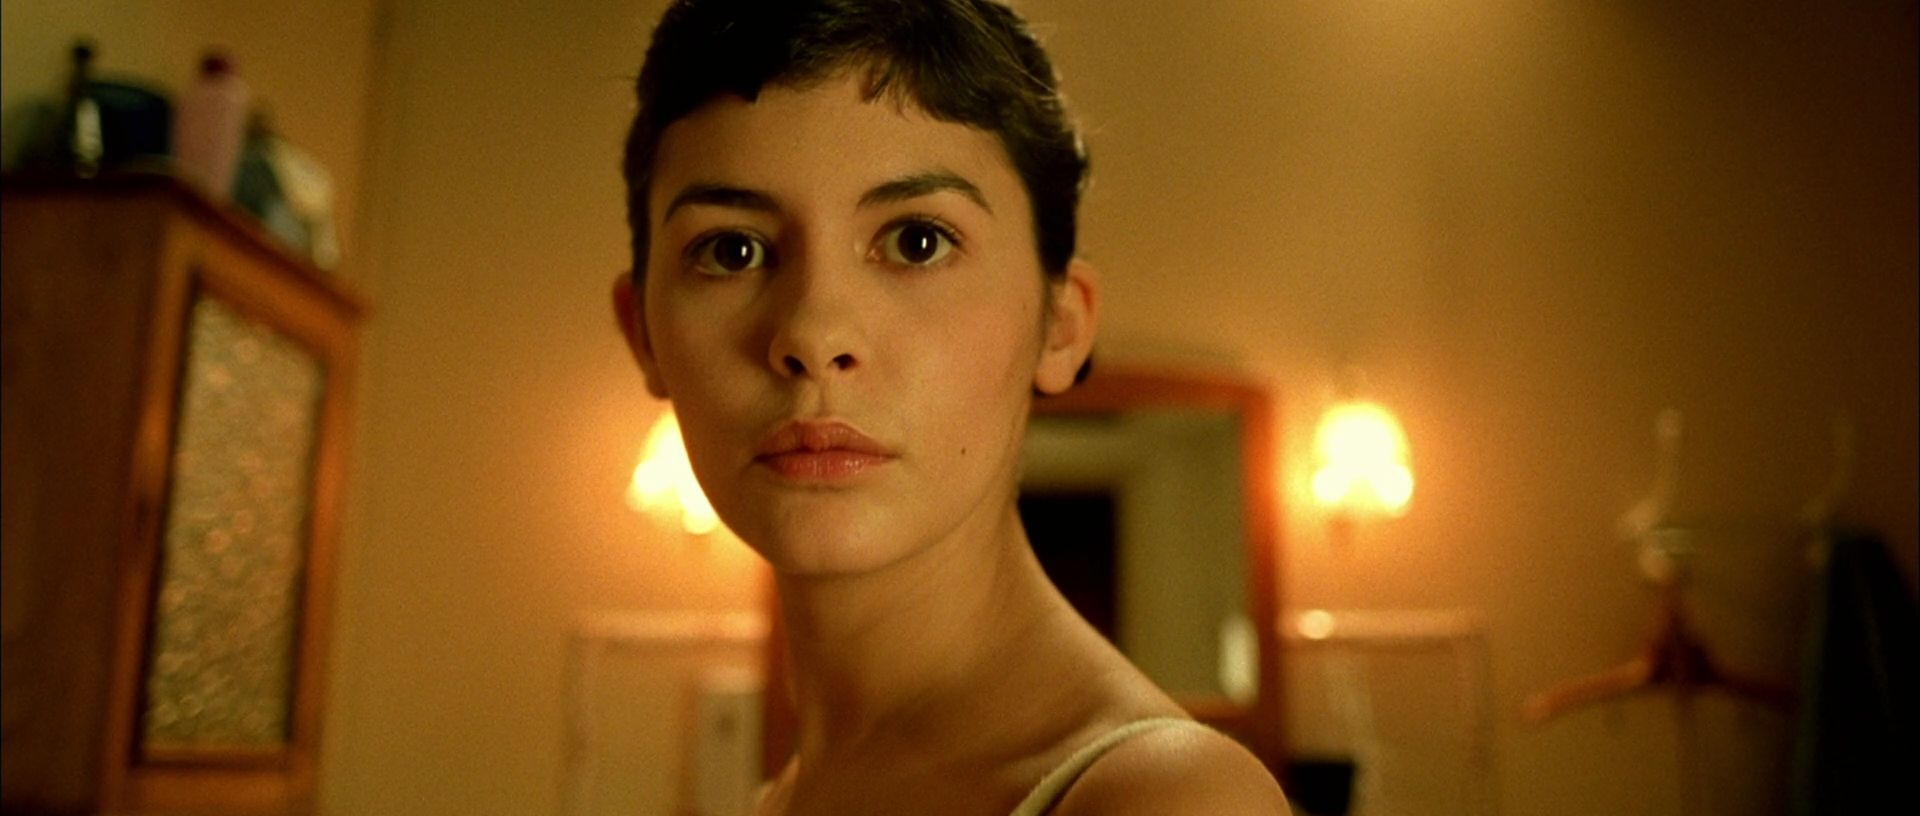 audrey tautou amelie gif wallpapers - massimages | style